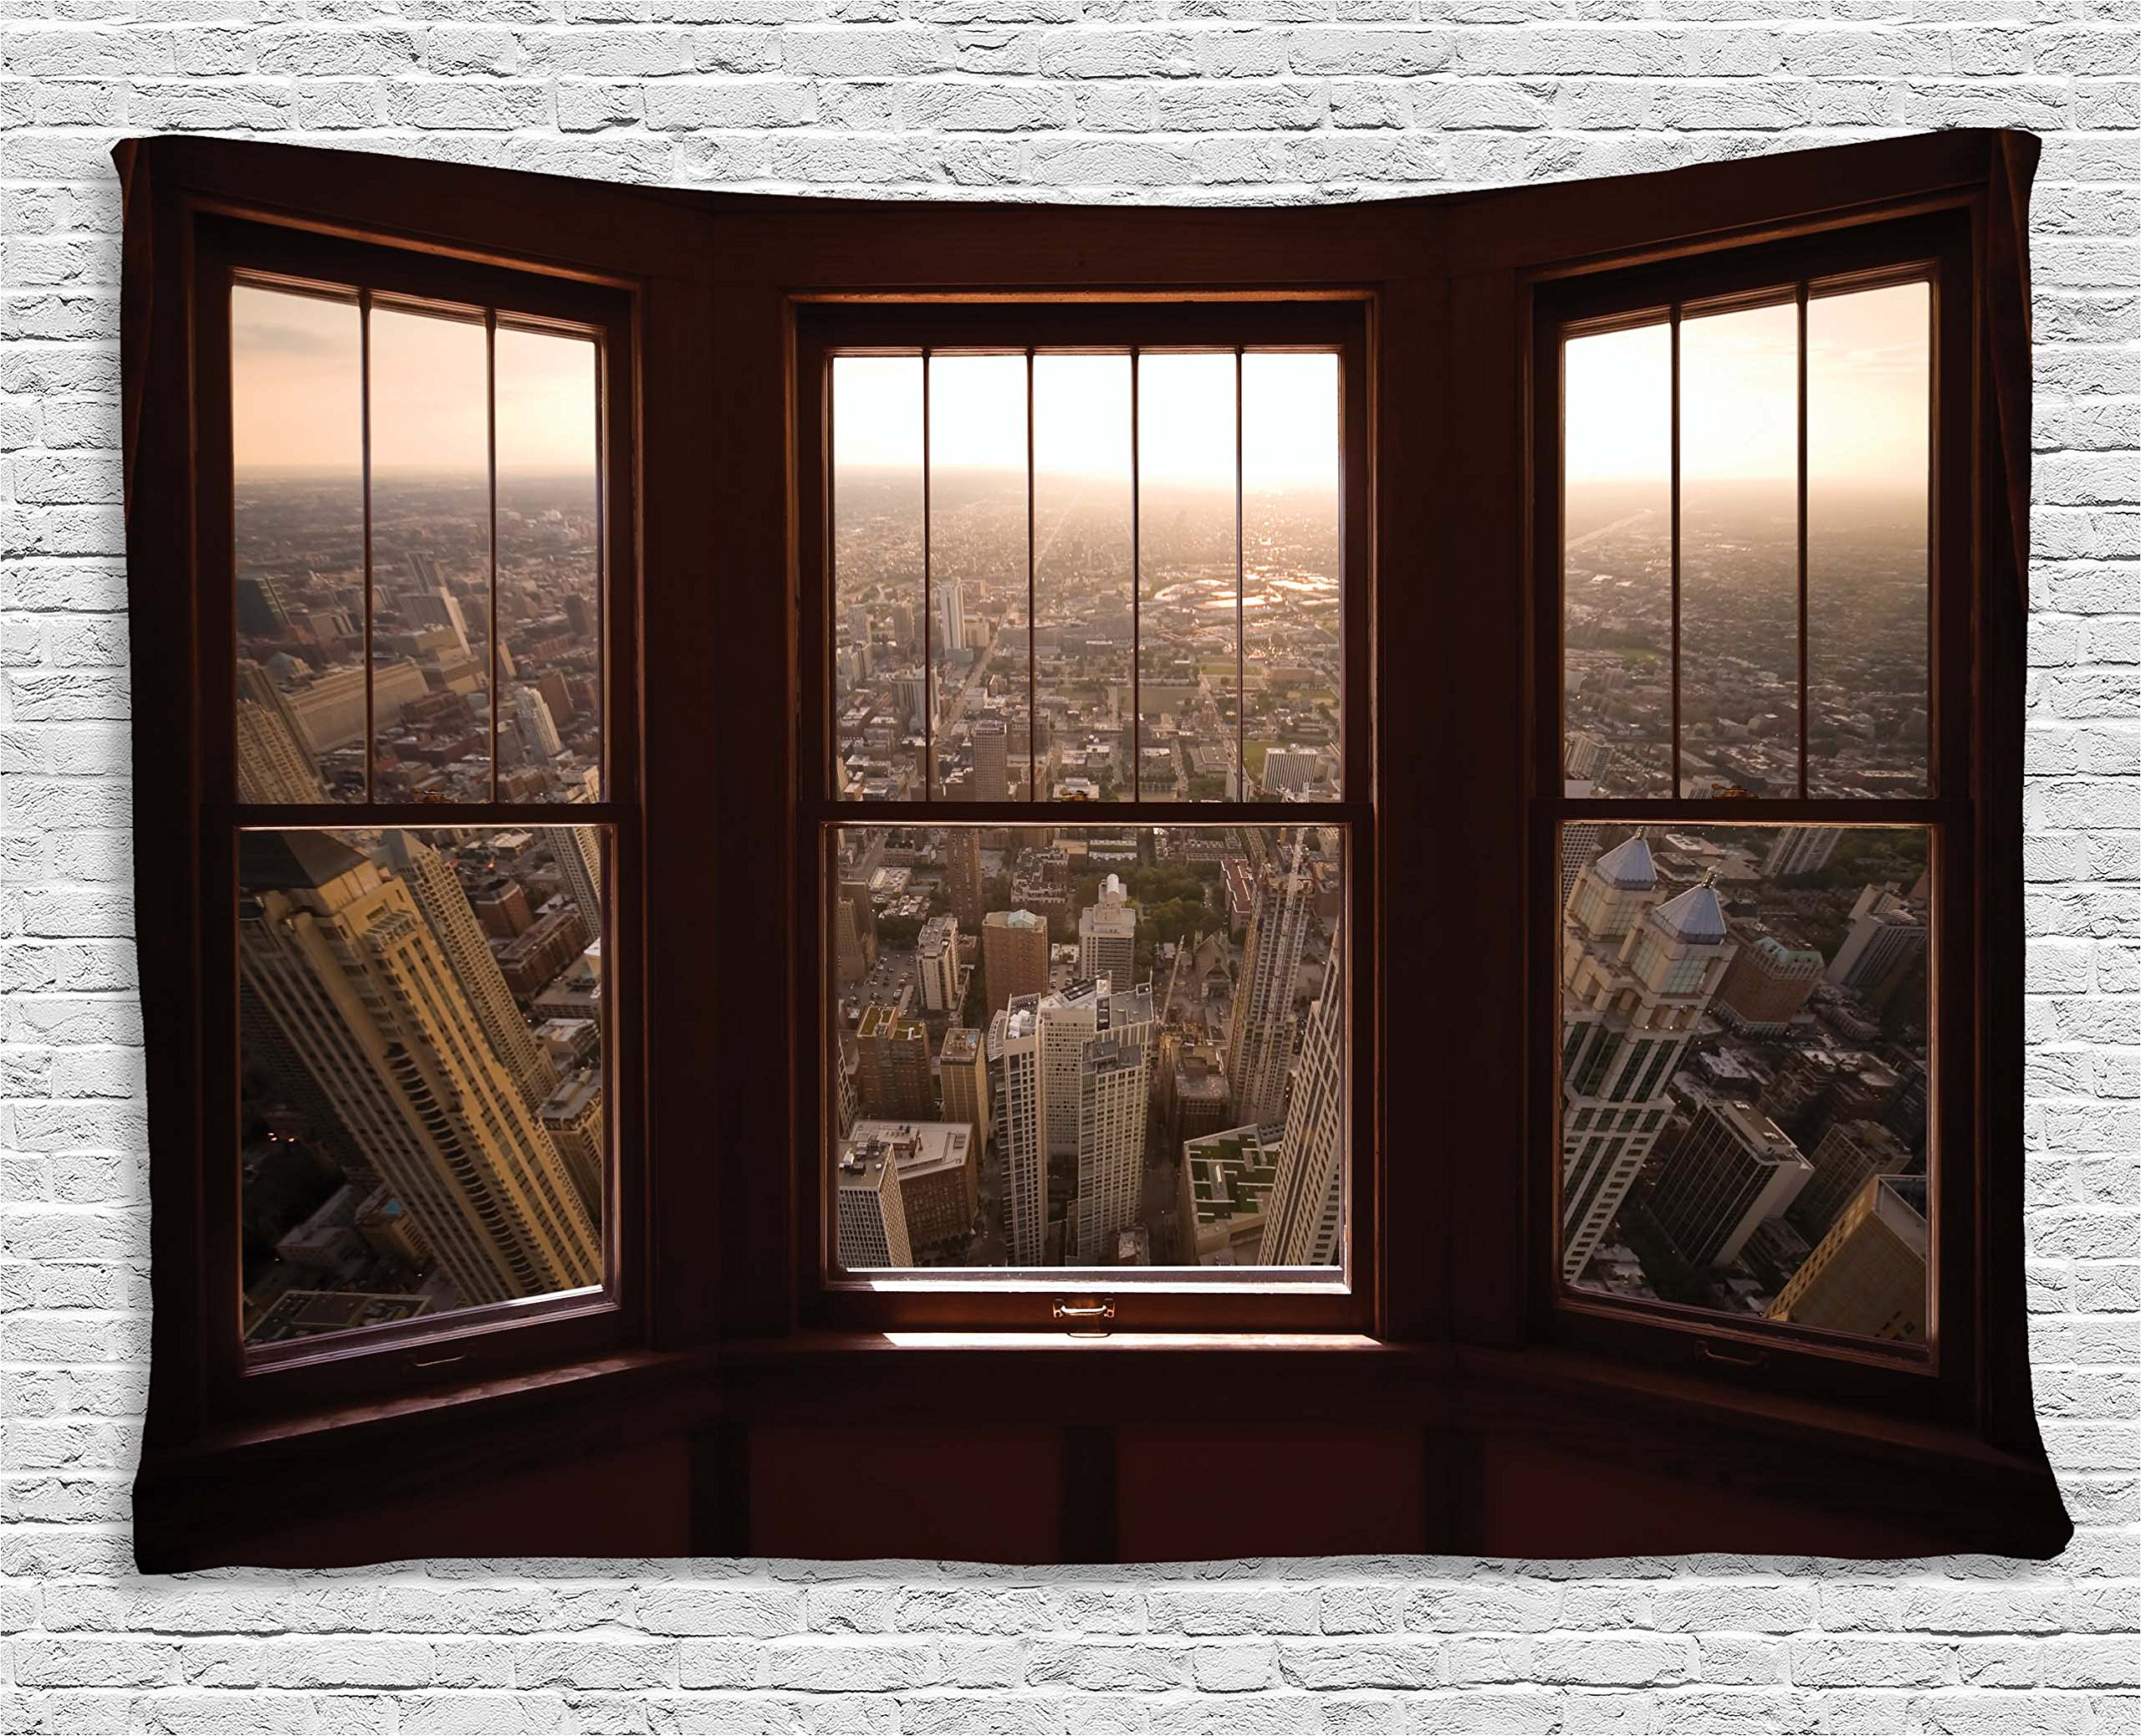 Ambesonne Aerial Decor Tapestry by, Urban View from the Window View City Dusk Building North American Town Scene, Wall Hanging for Bedroom Living Room Dorm, 60WX40L Inches, Brown Taupe